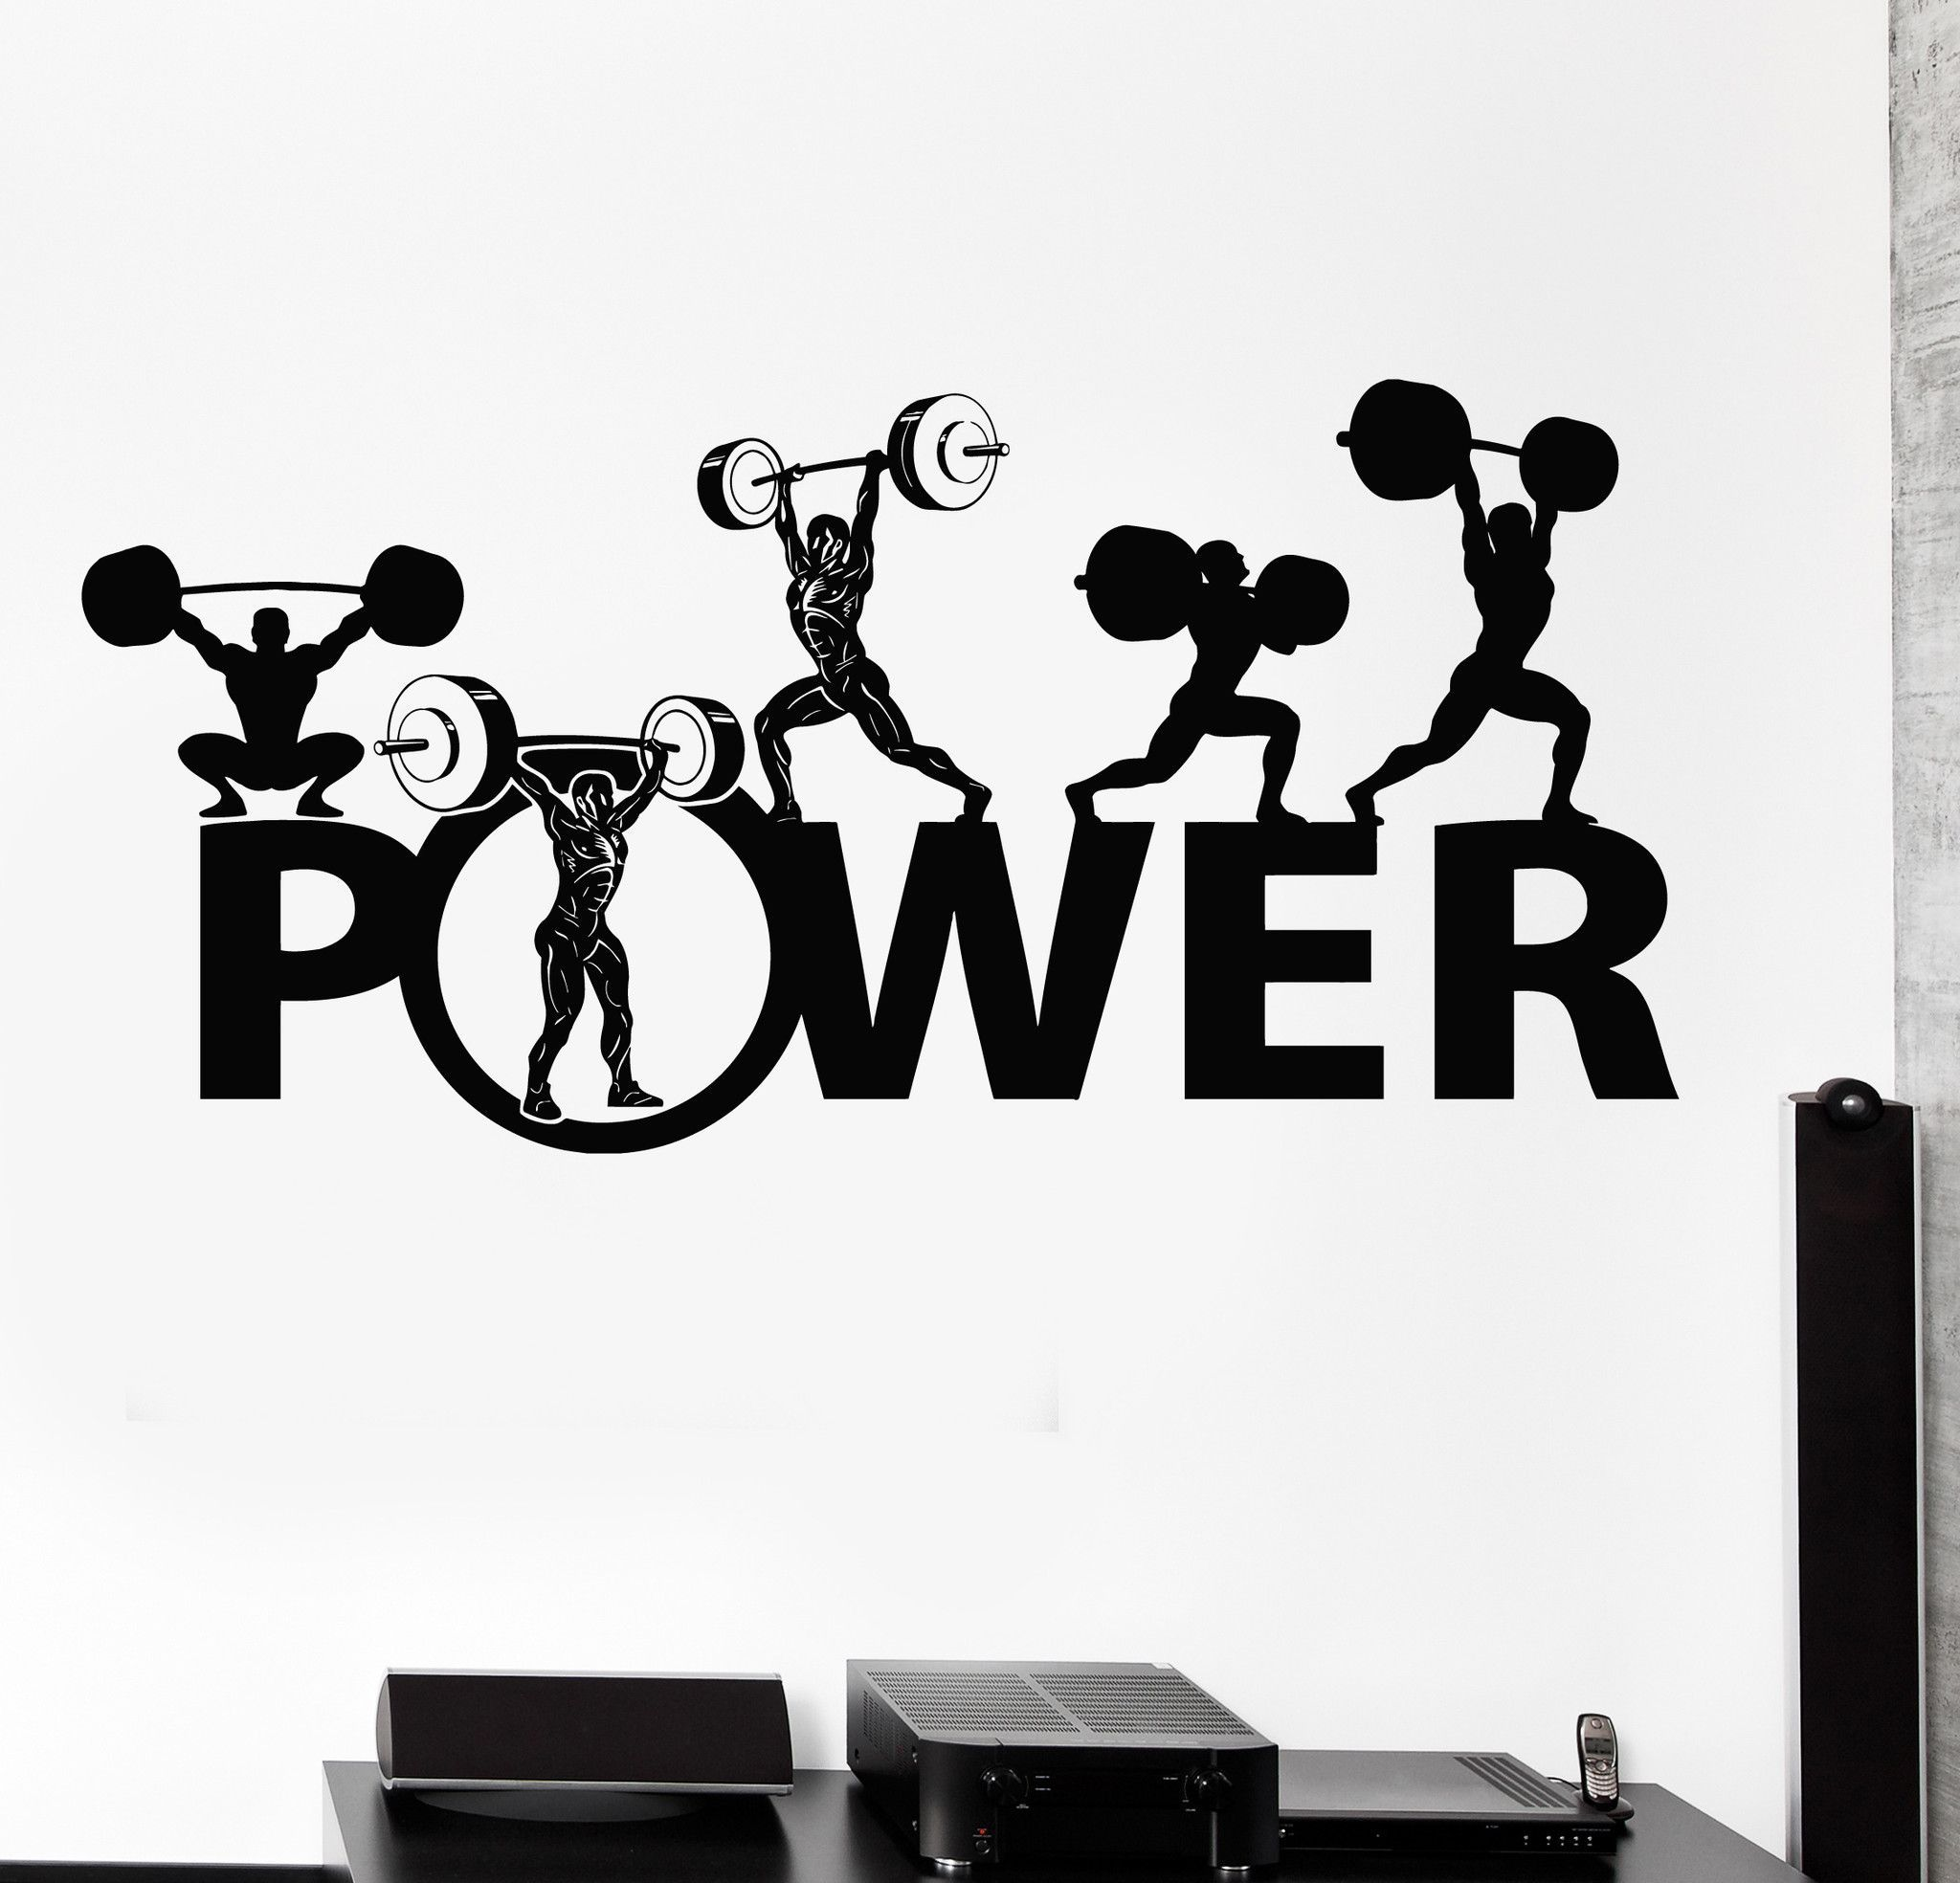 Wall Vinyl Decal Powerlifting Bodybuilding Sport Barbell